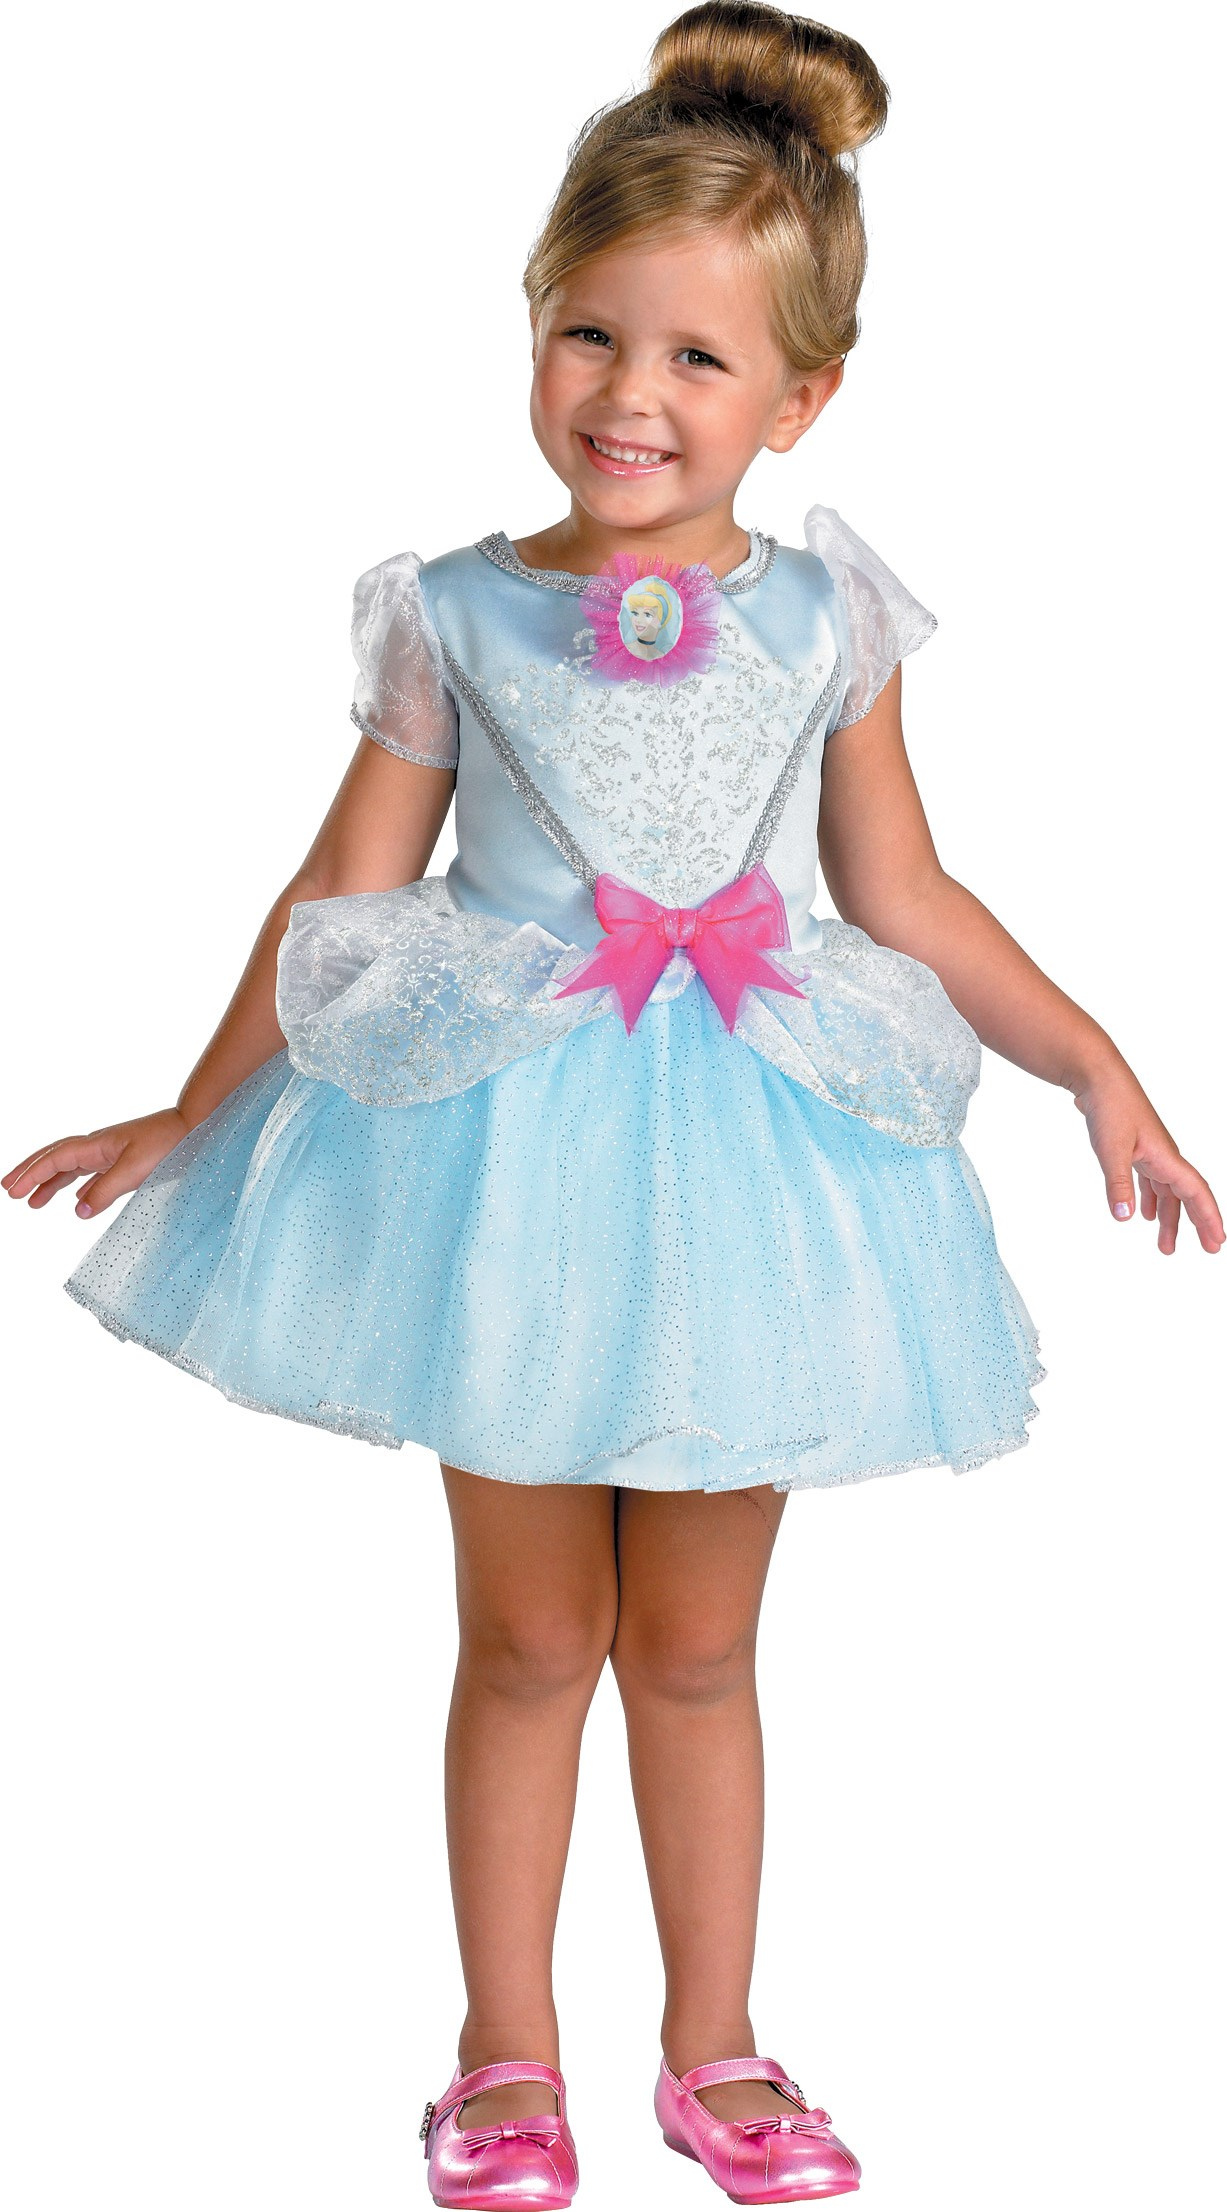 Disney Cinderella Ballerina Toddler/Child Costume